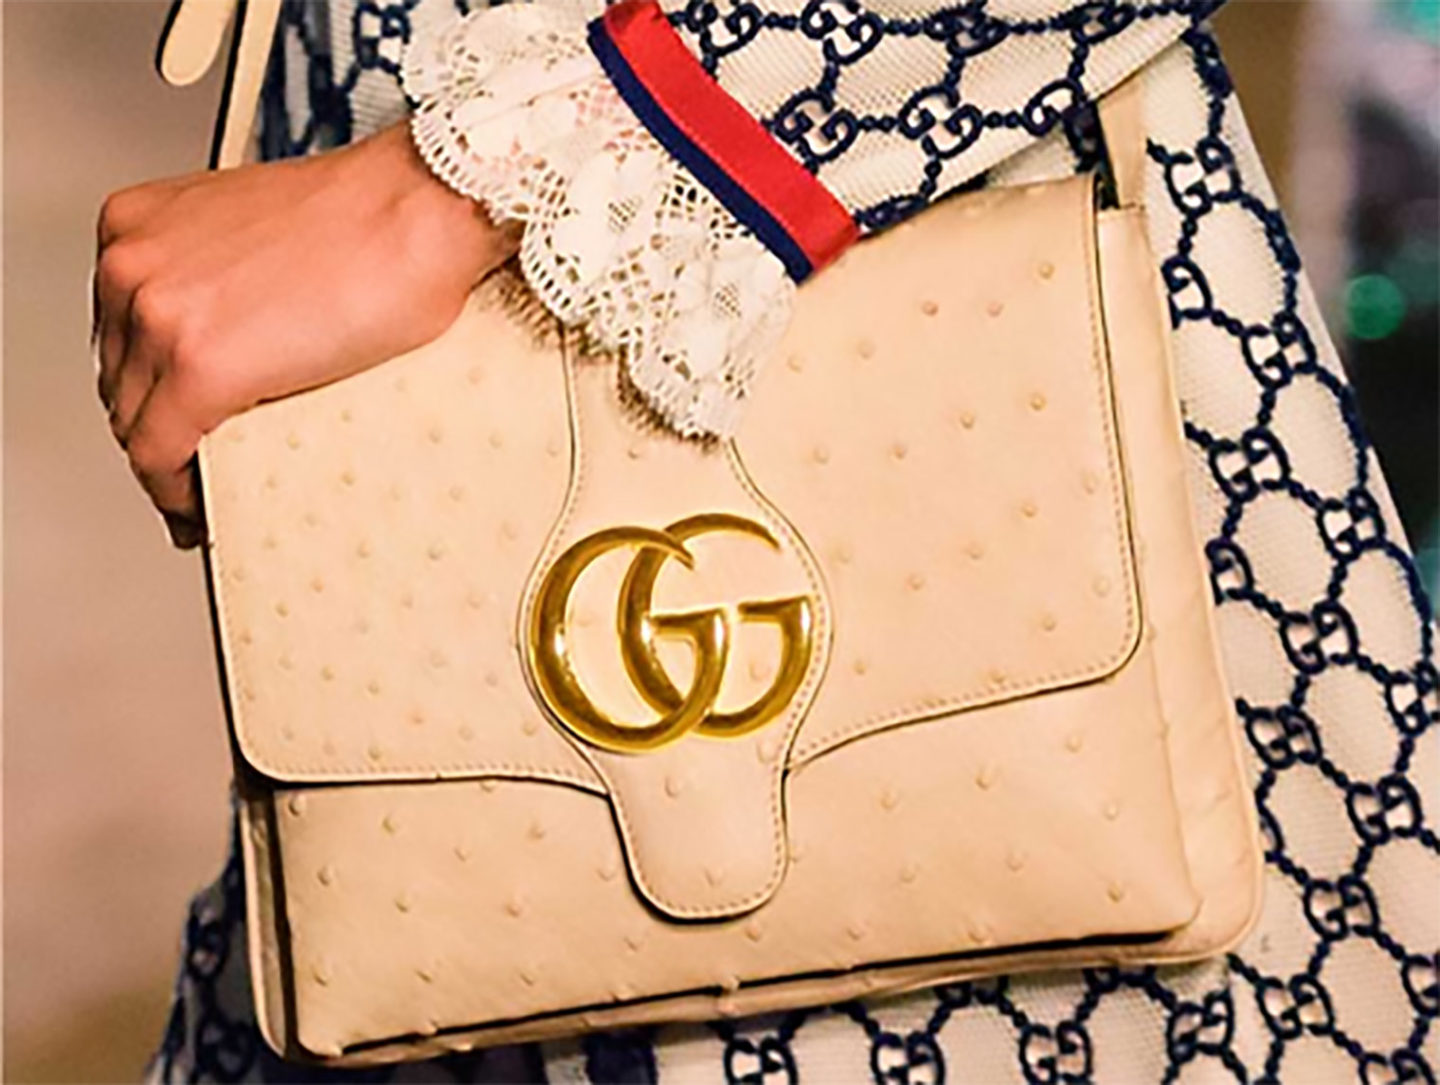 Top 3 newest Gucci bags this fall